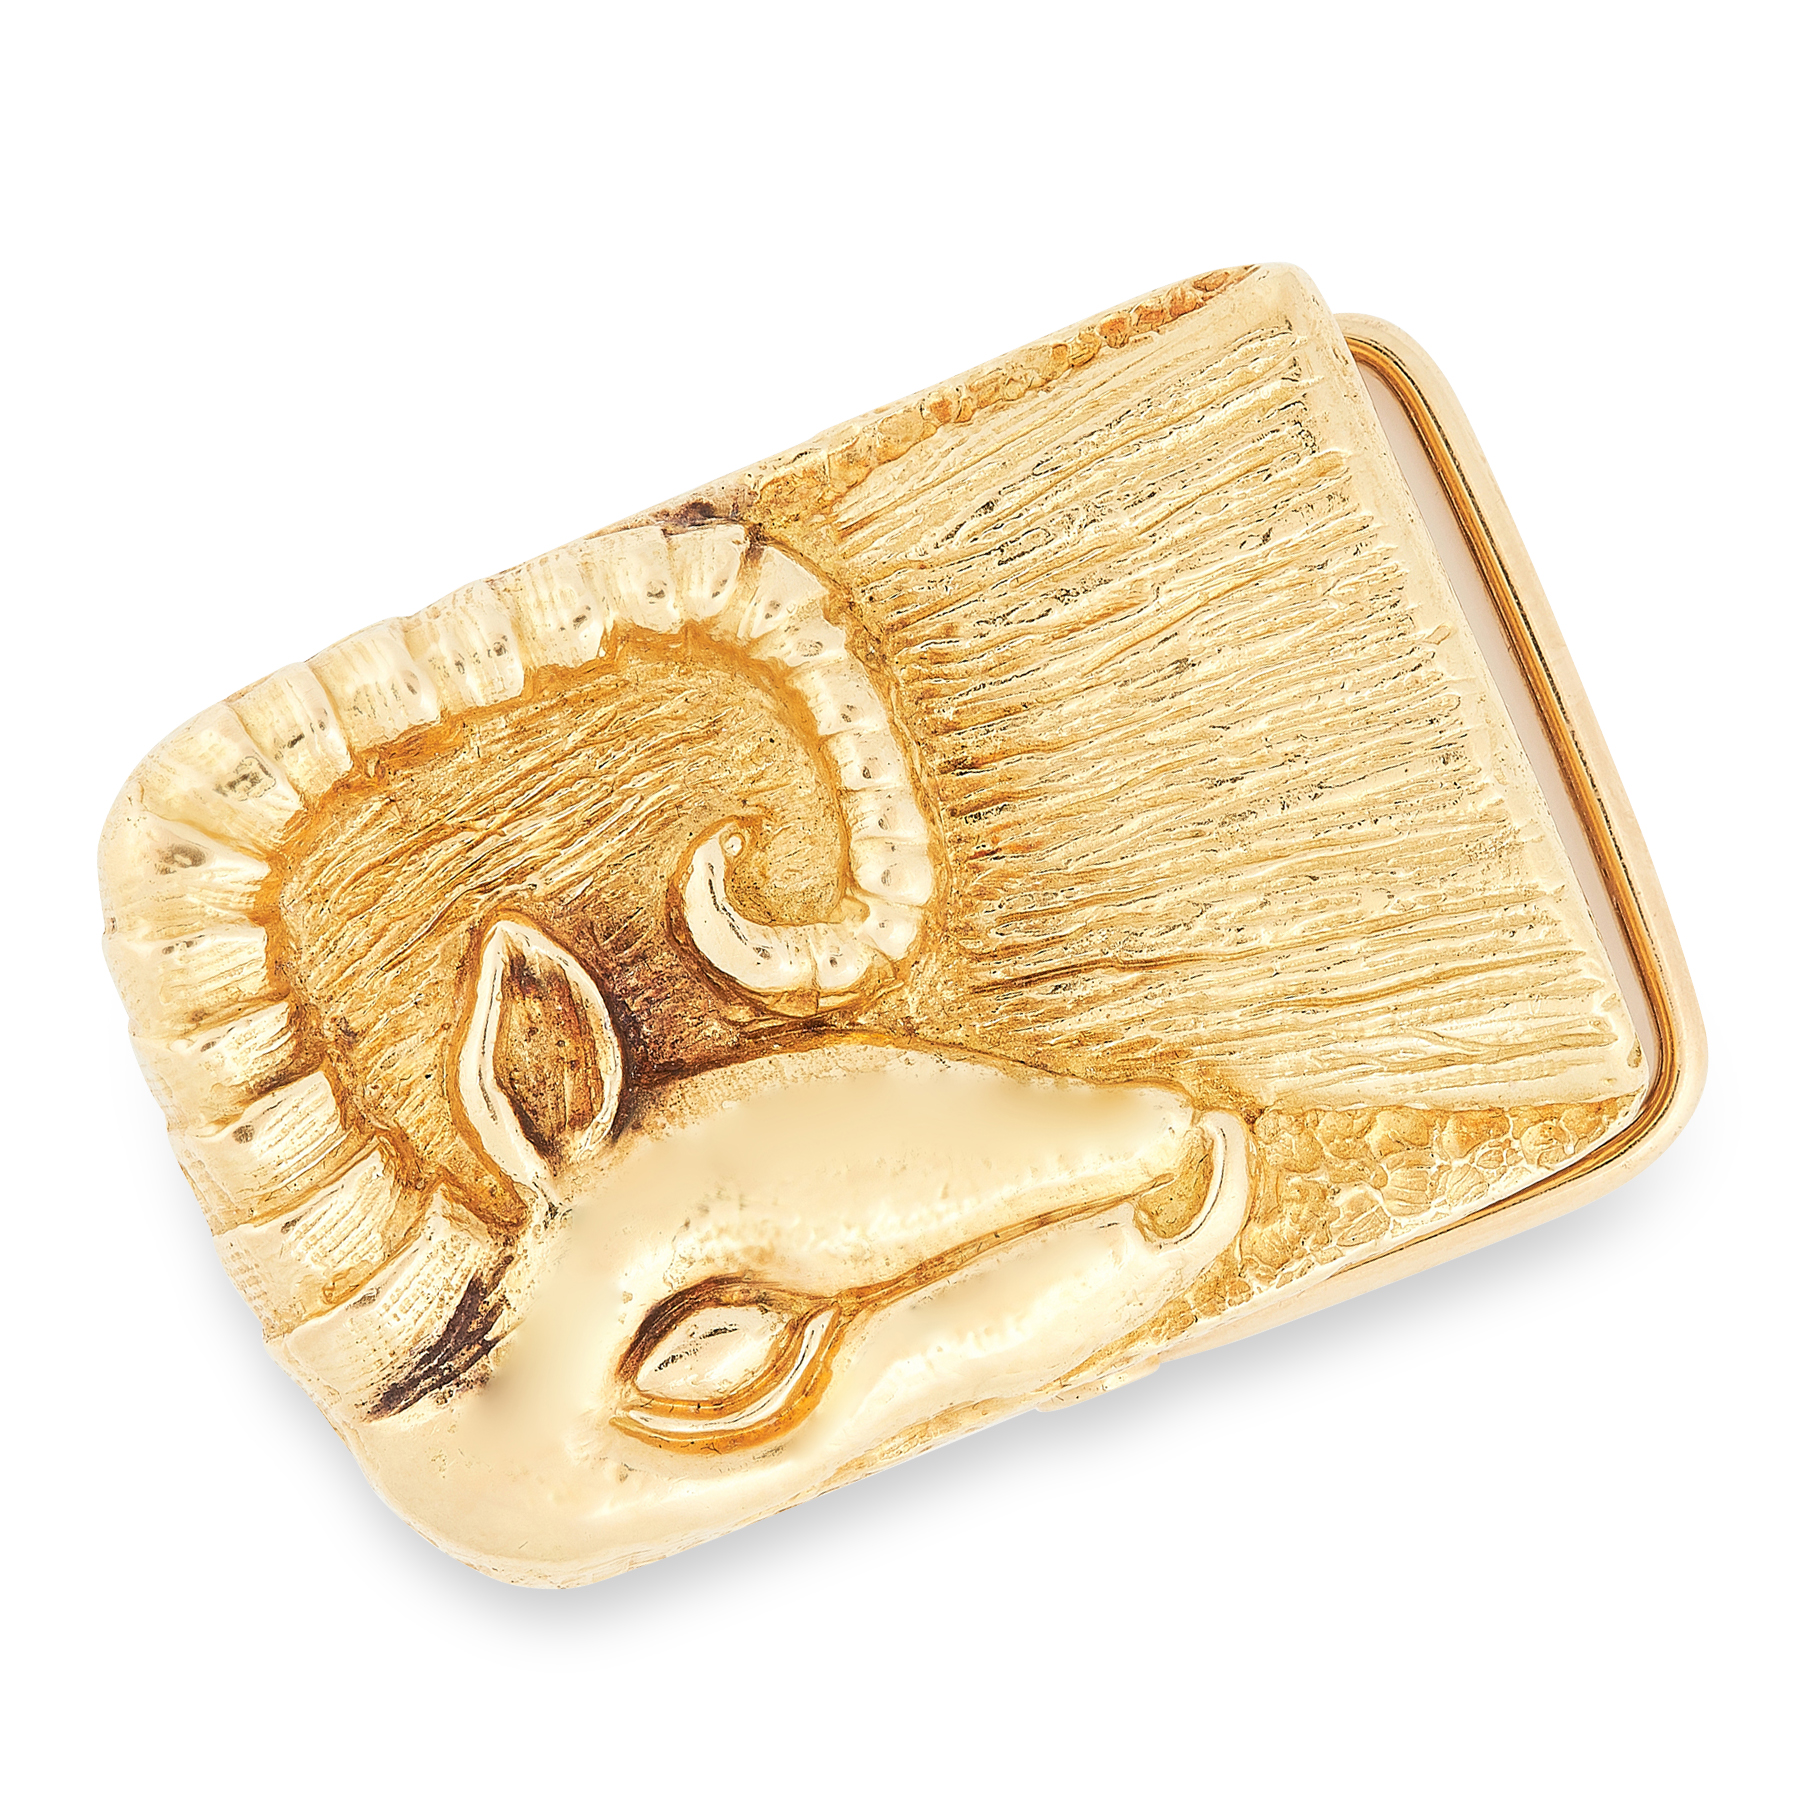 A VINTAGE BELT BUCKLE, DAVID WEBB in 18ct yellow gold, the rectangular body textured in high